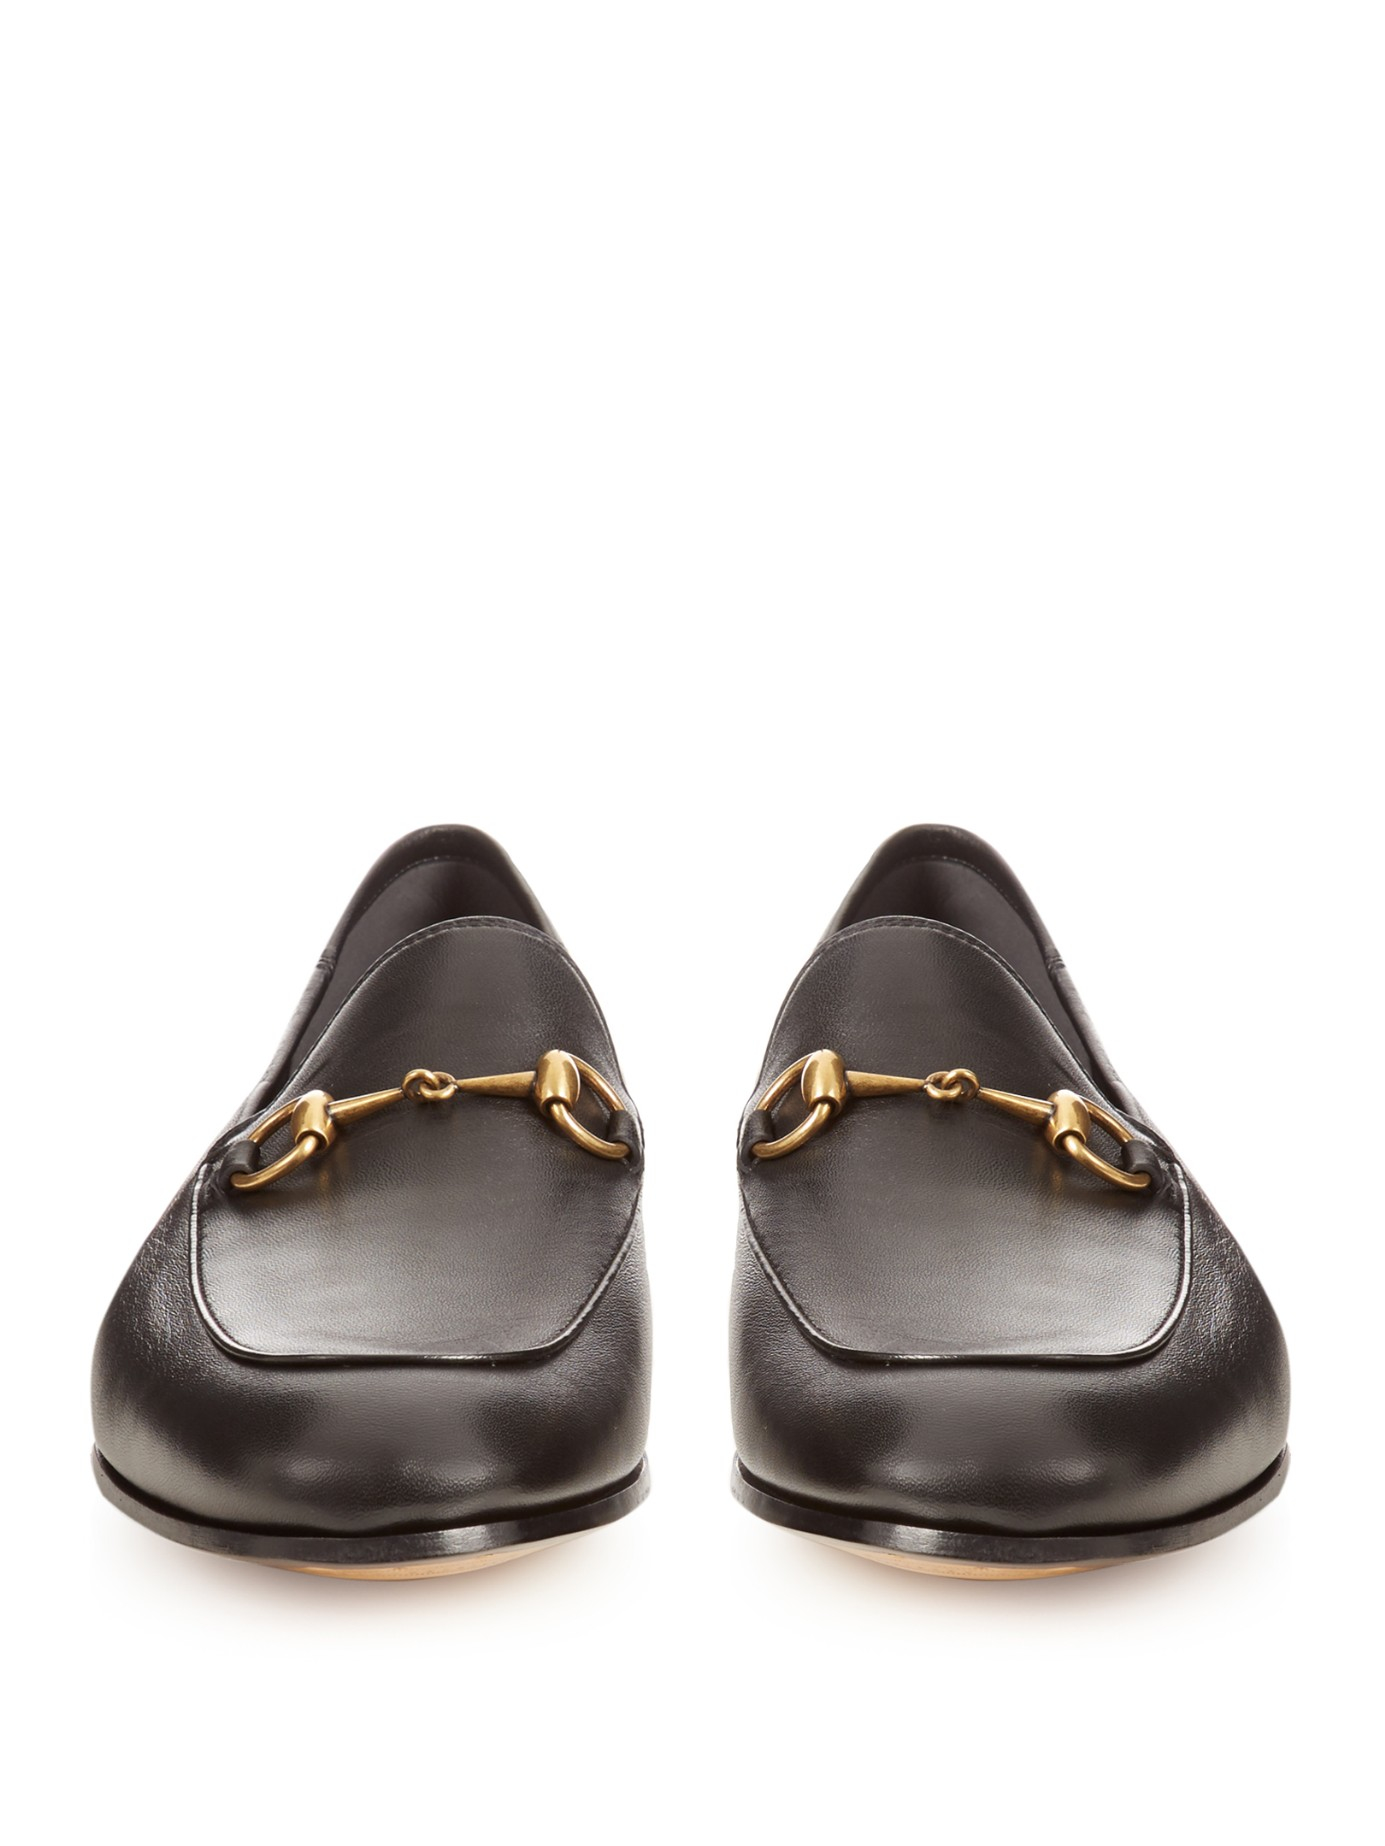 a6e6834aa33 Lyst - Gucci Brixton Leather Loafers in Black for Men